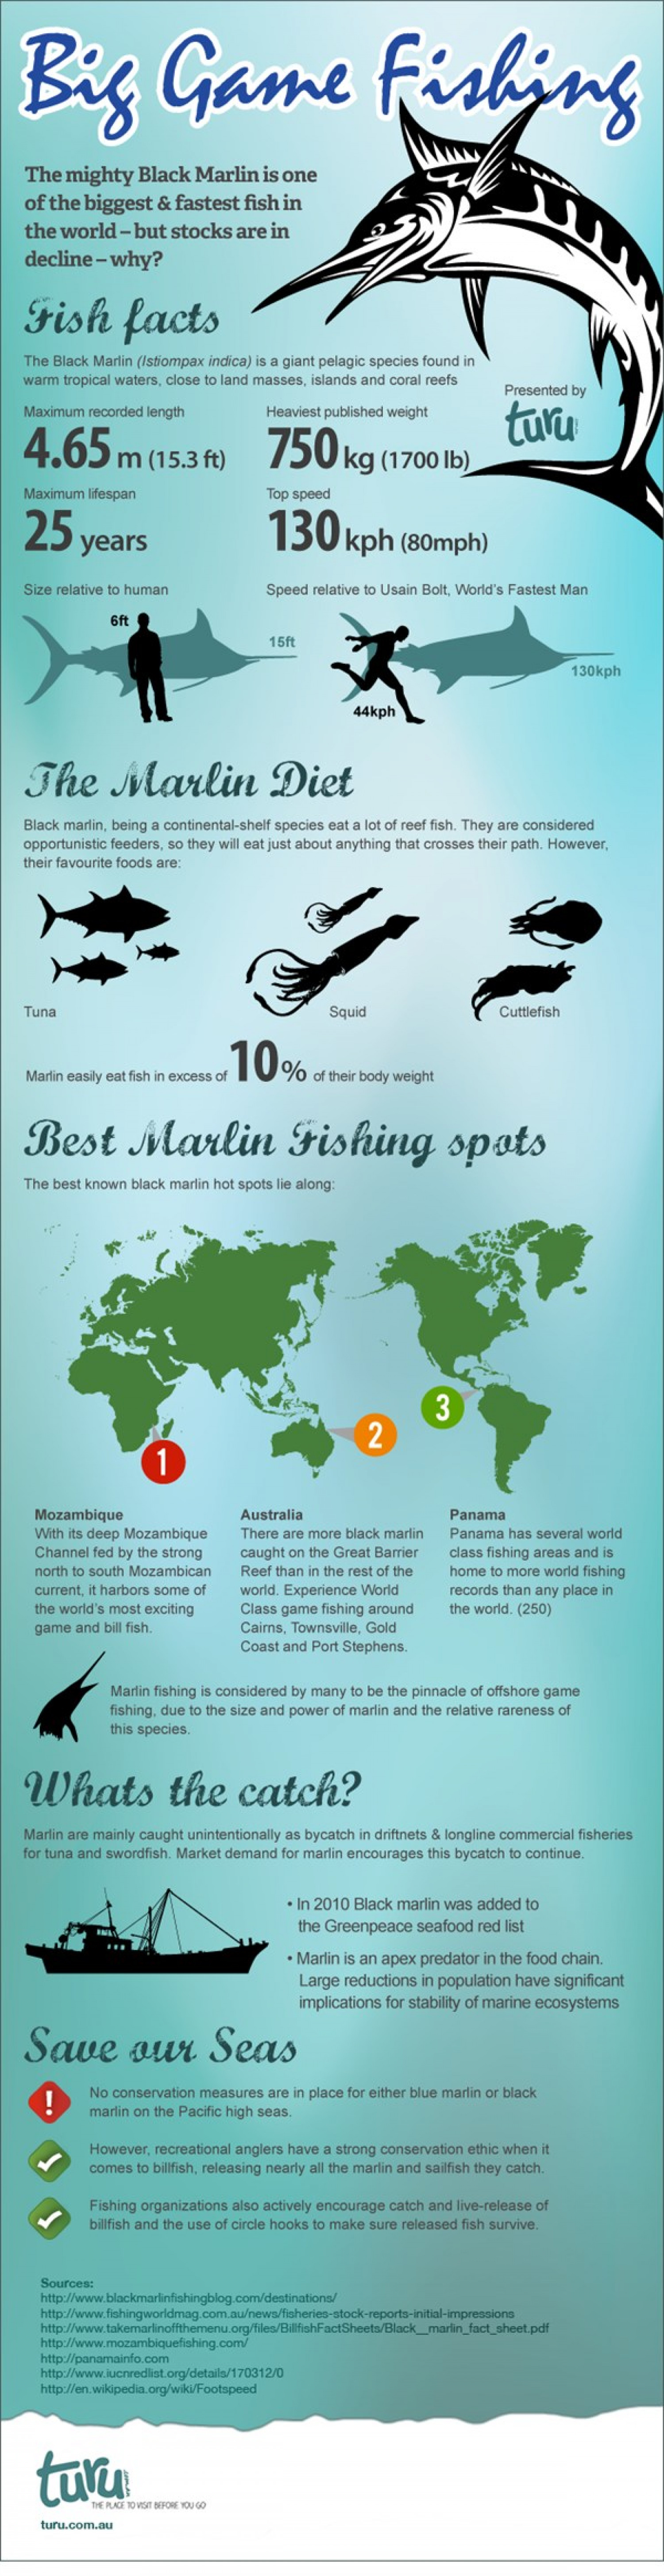 Big Game Fishing Infographic Infographic